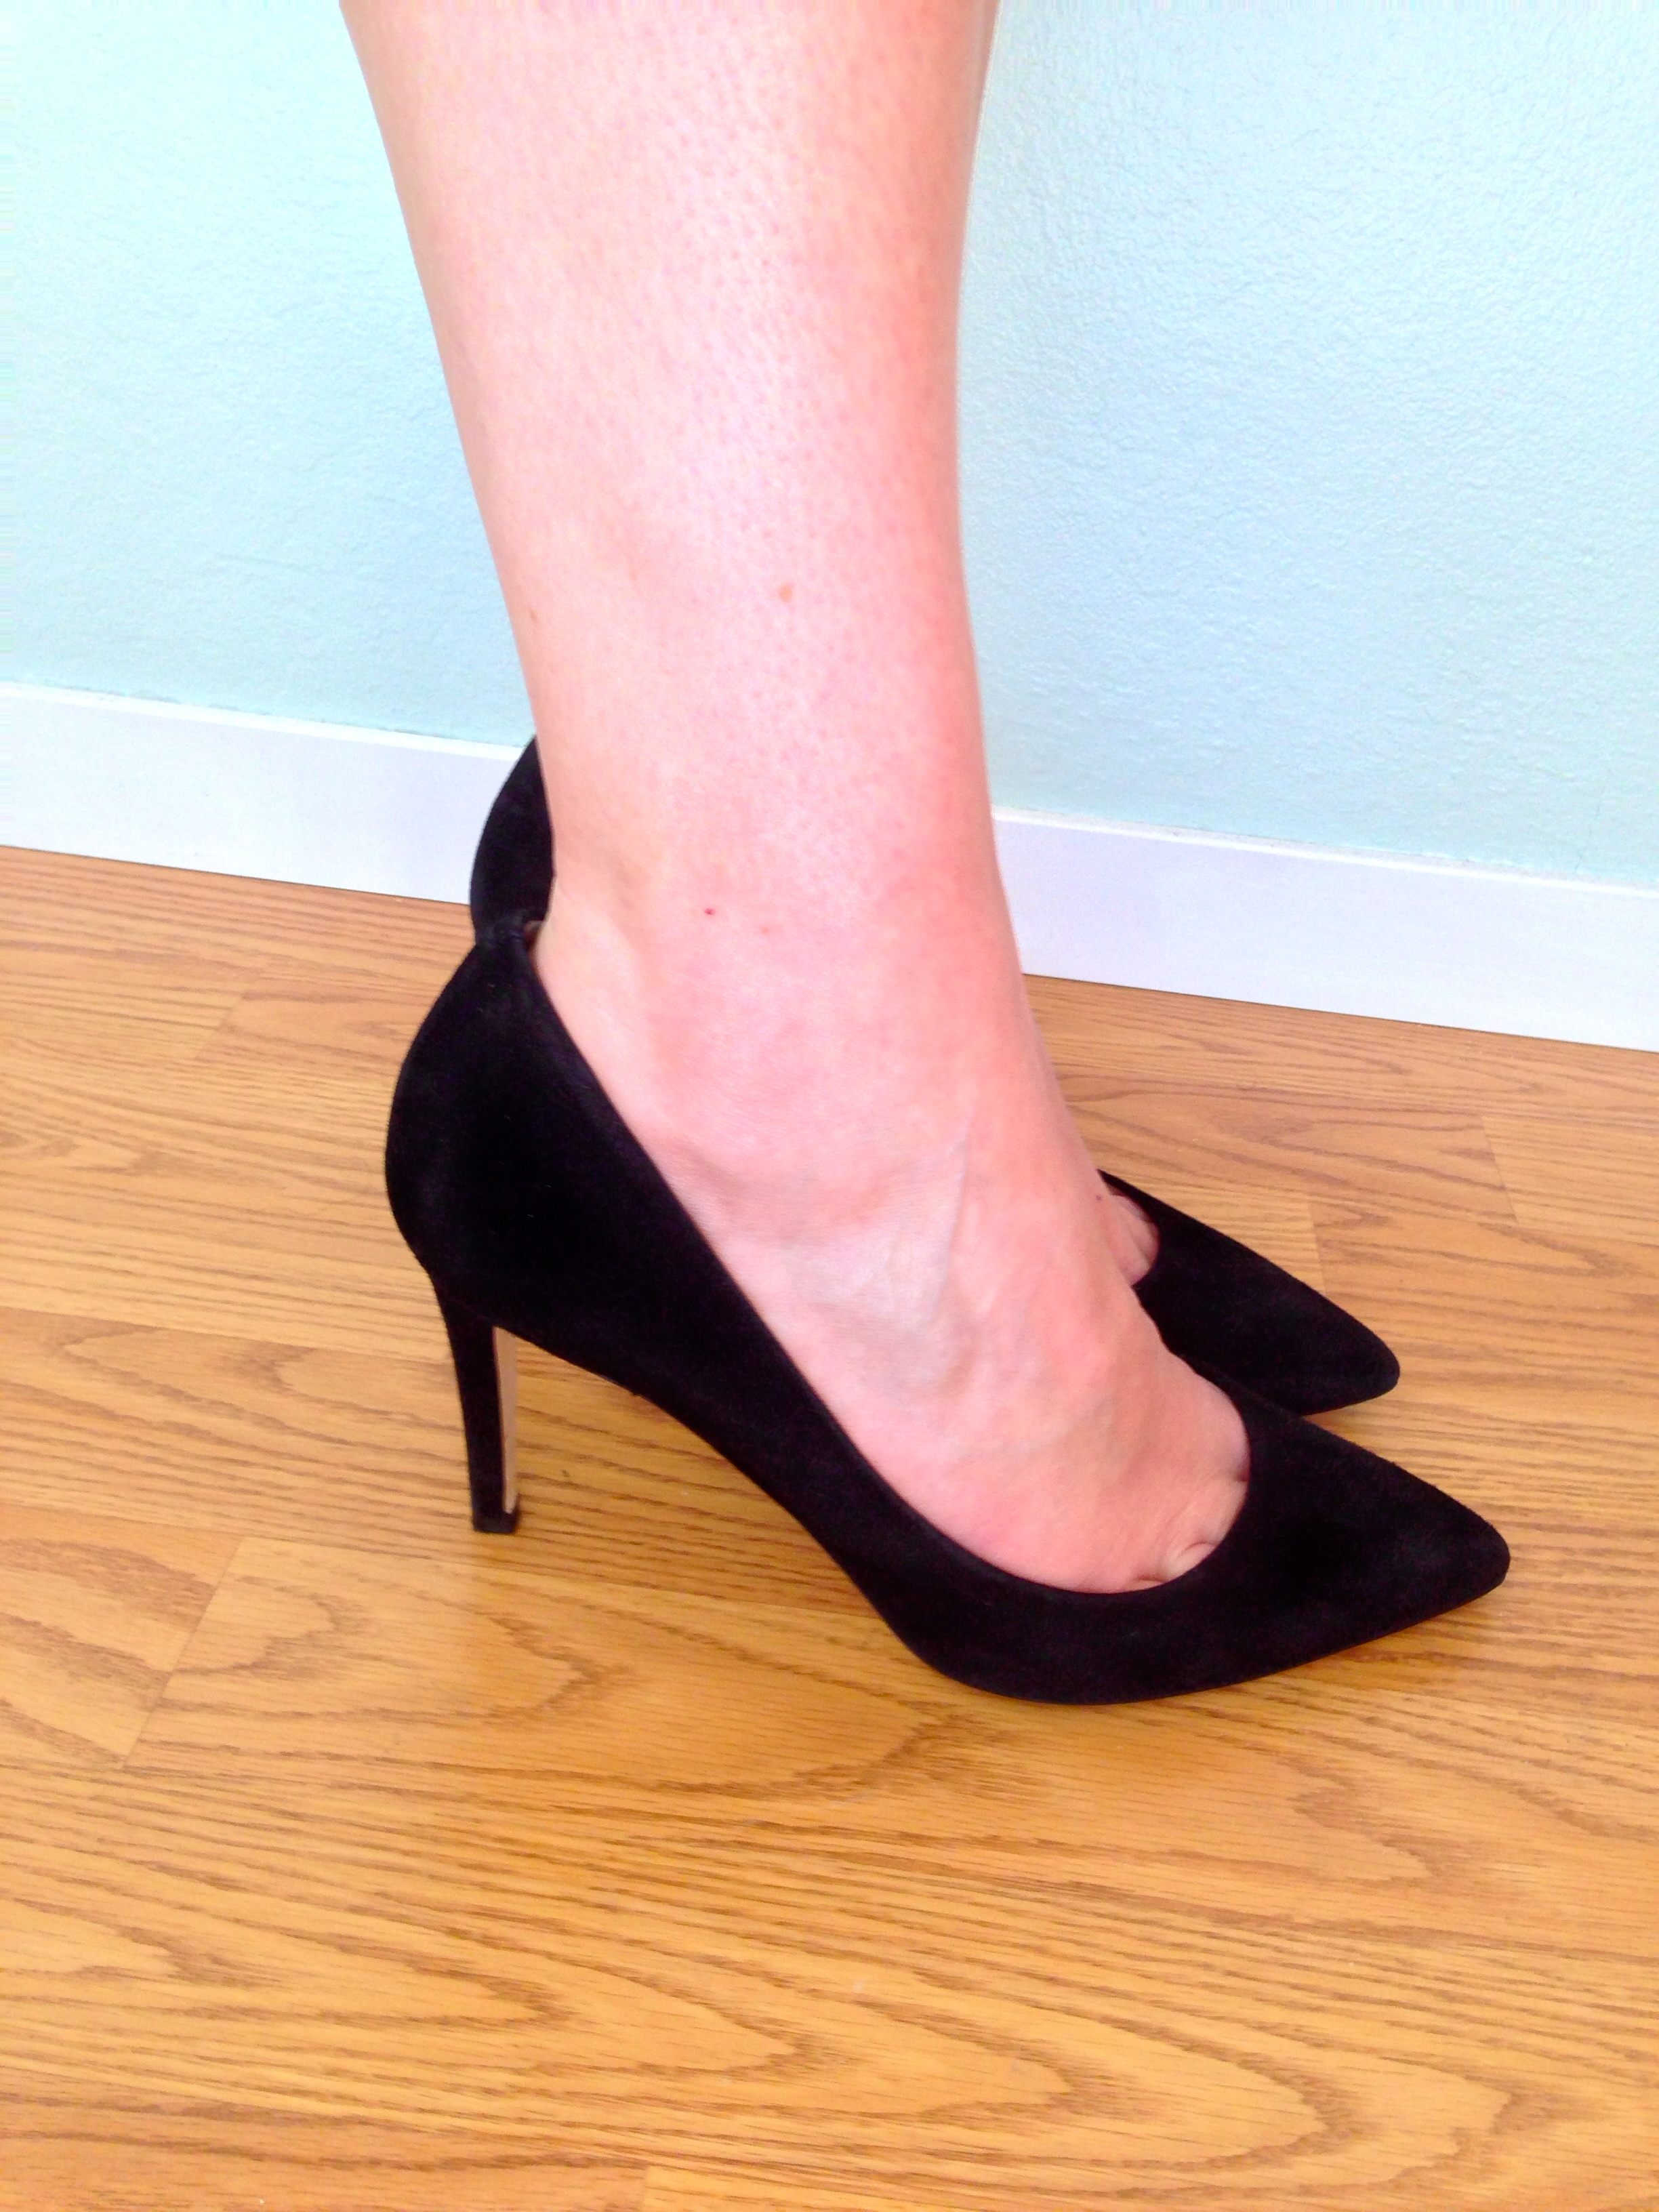 4721480877b These J Crew Everly pumps are by far my favorite shoe purchases. I have  always had issues with shoes